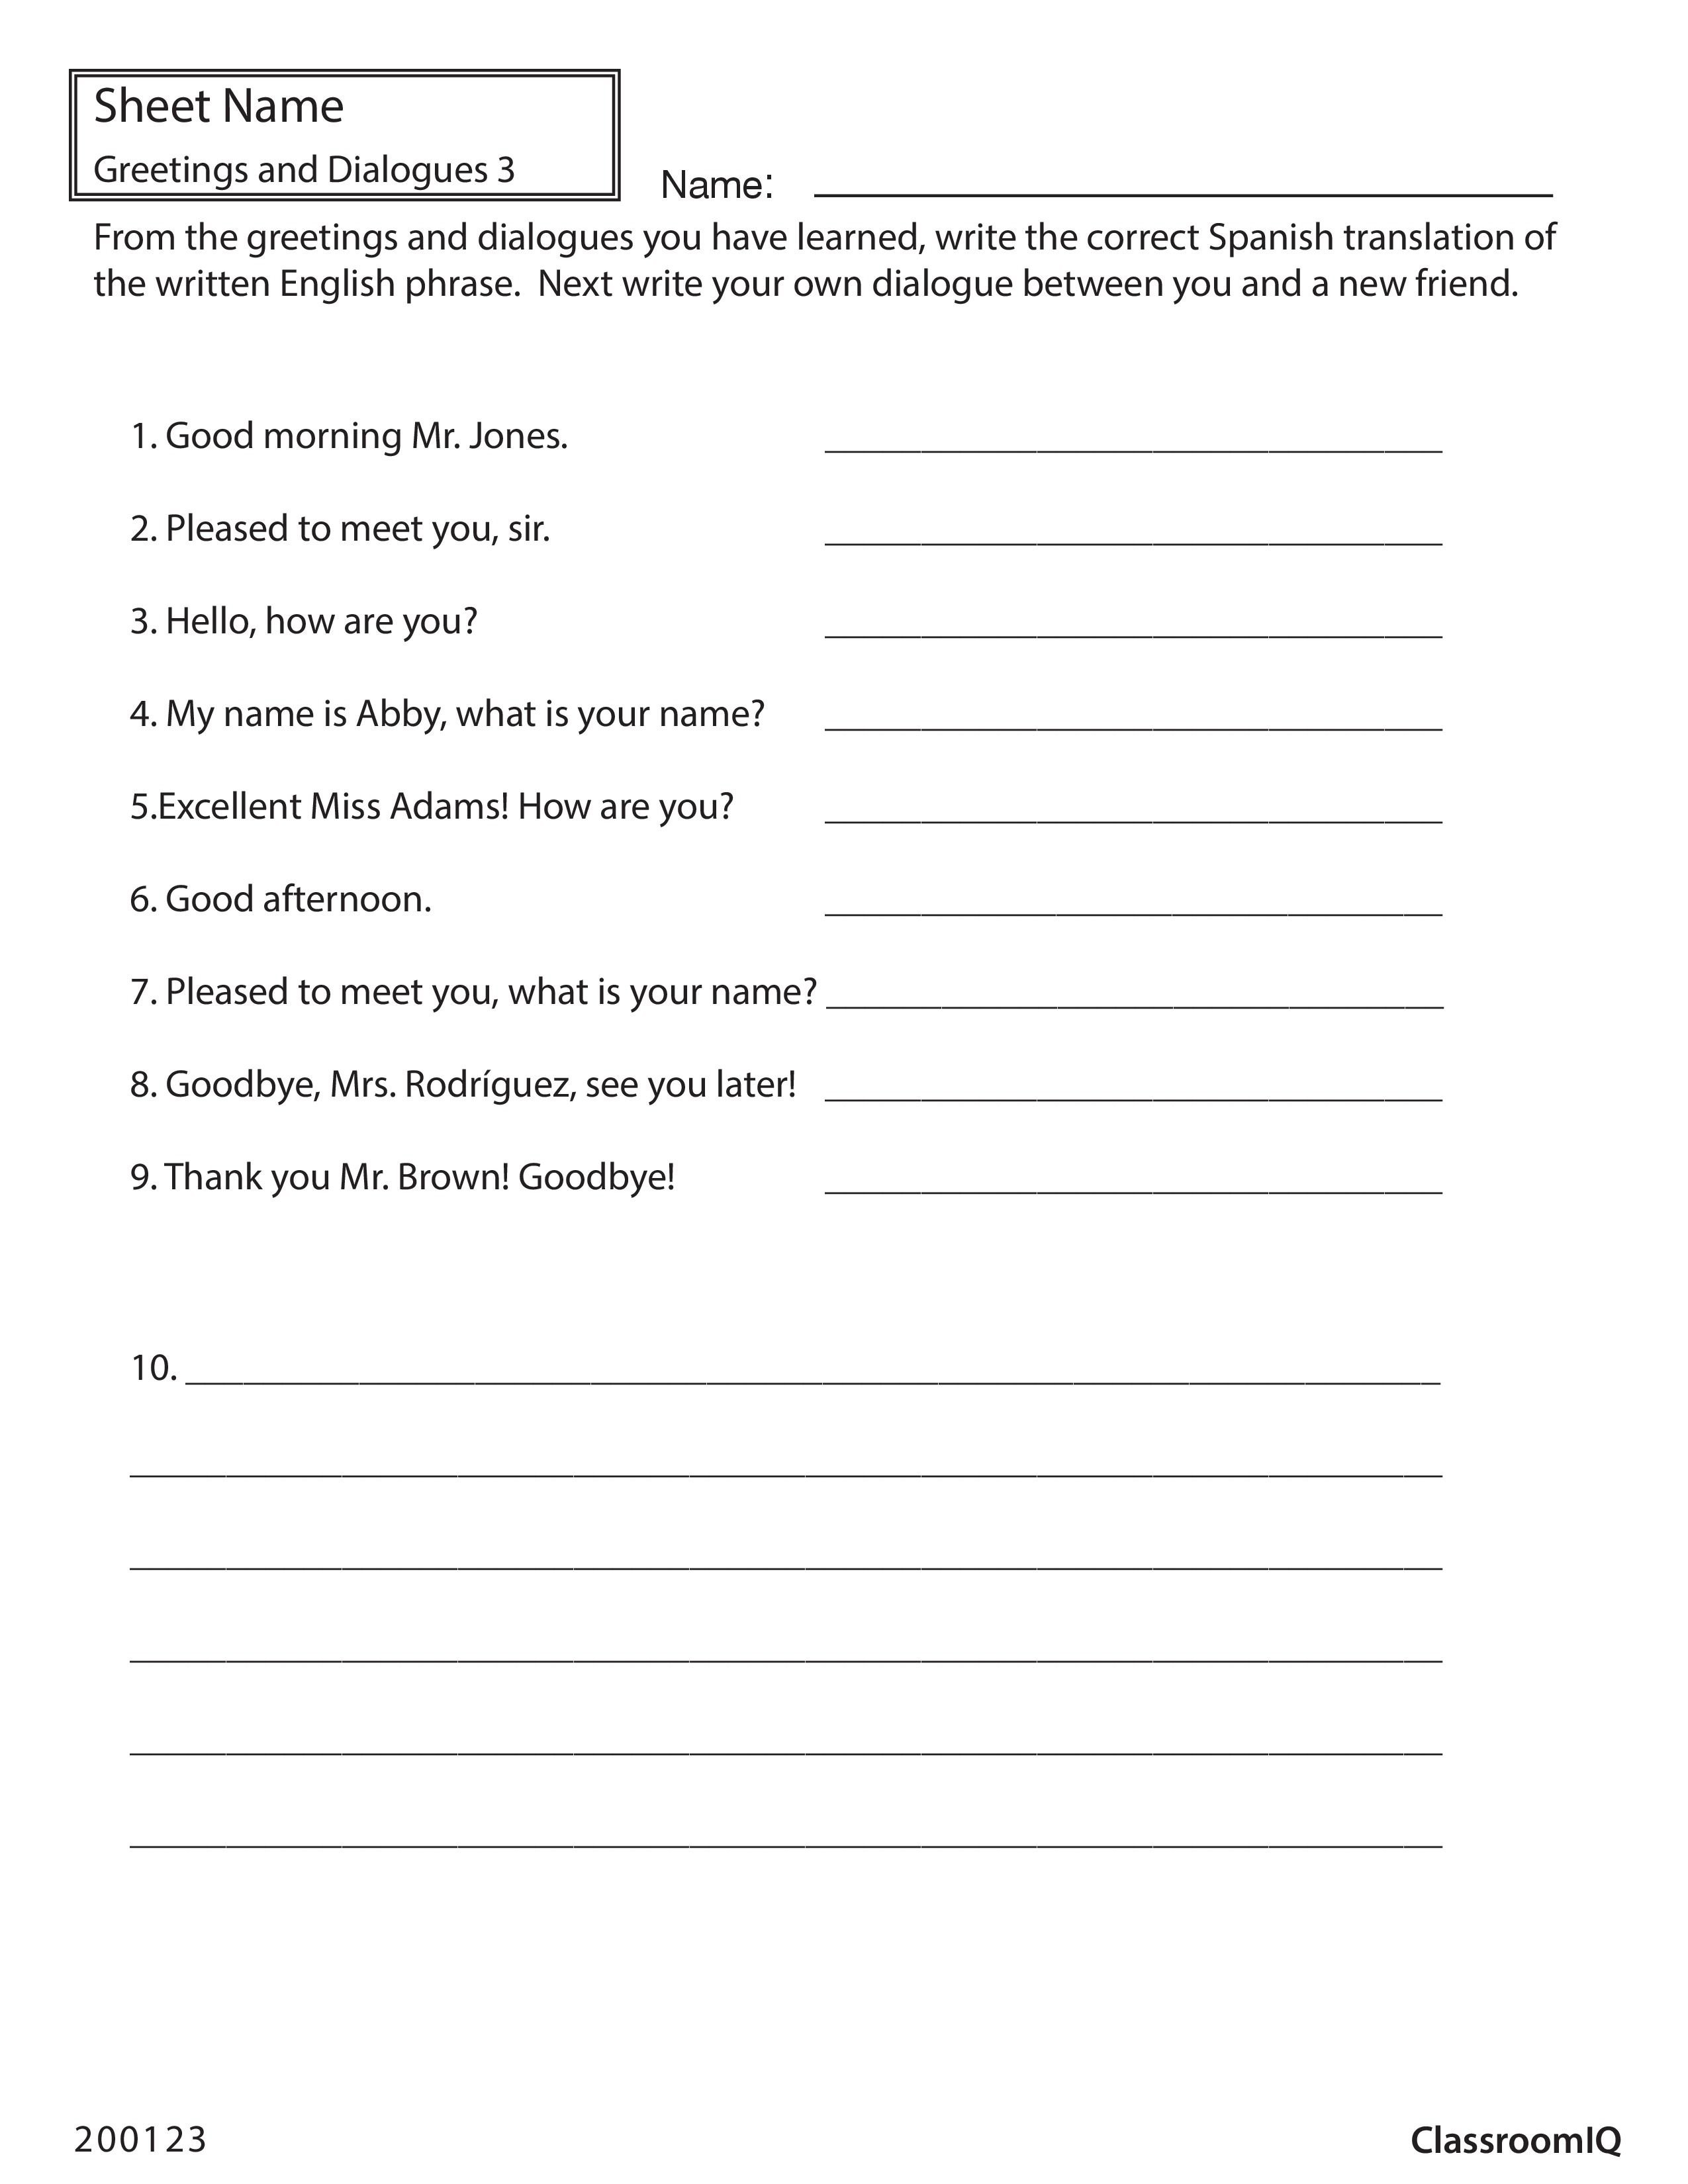 Worksheet Coloring Book Games Cbt Anxiety Workbook Regular Pentagon Within Learning Spanish Worksheets For Adults